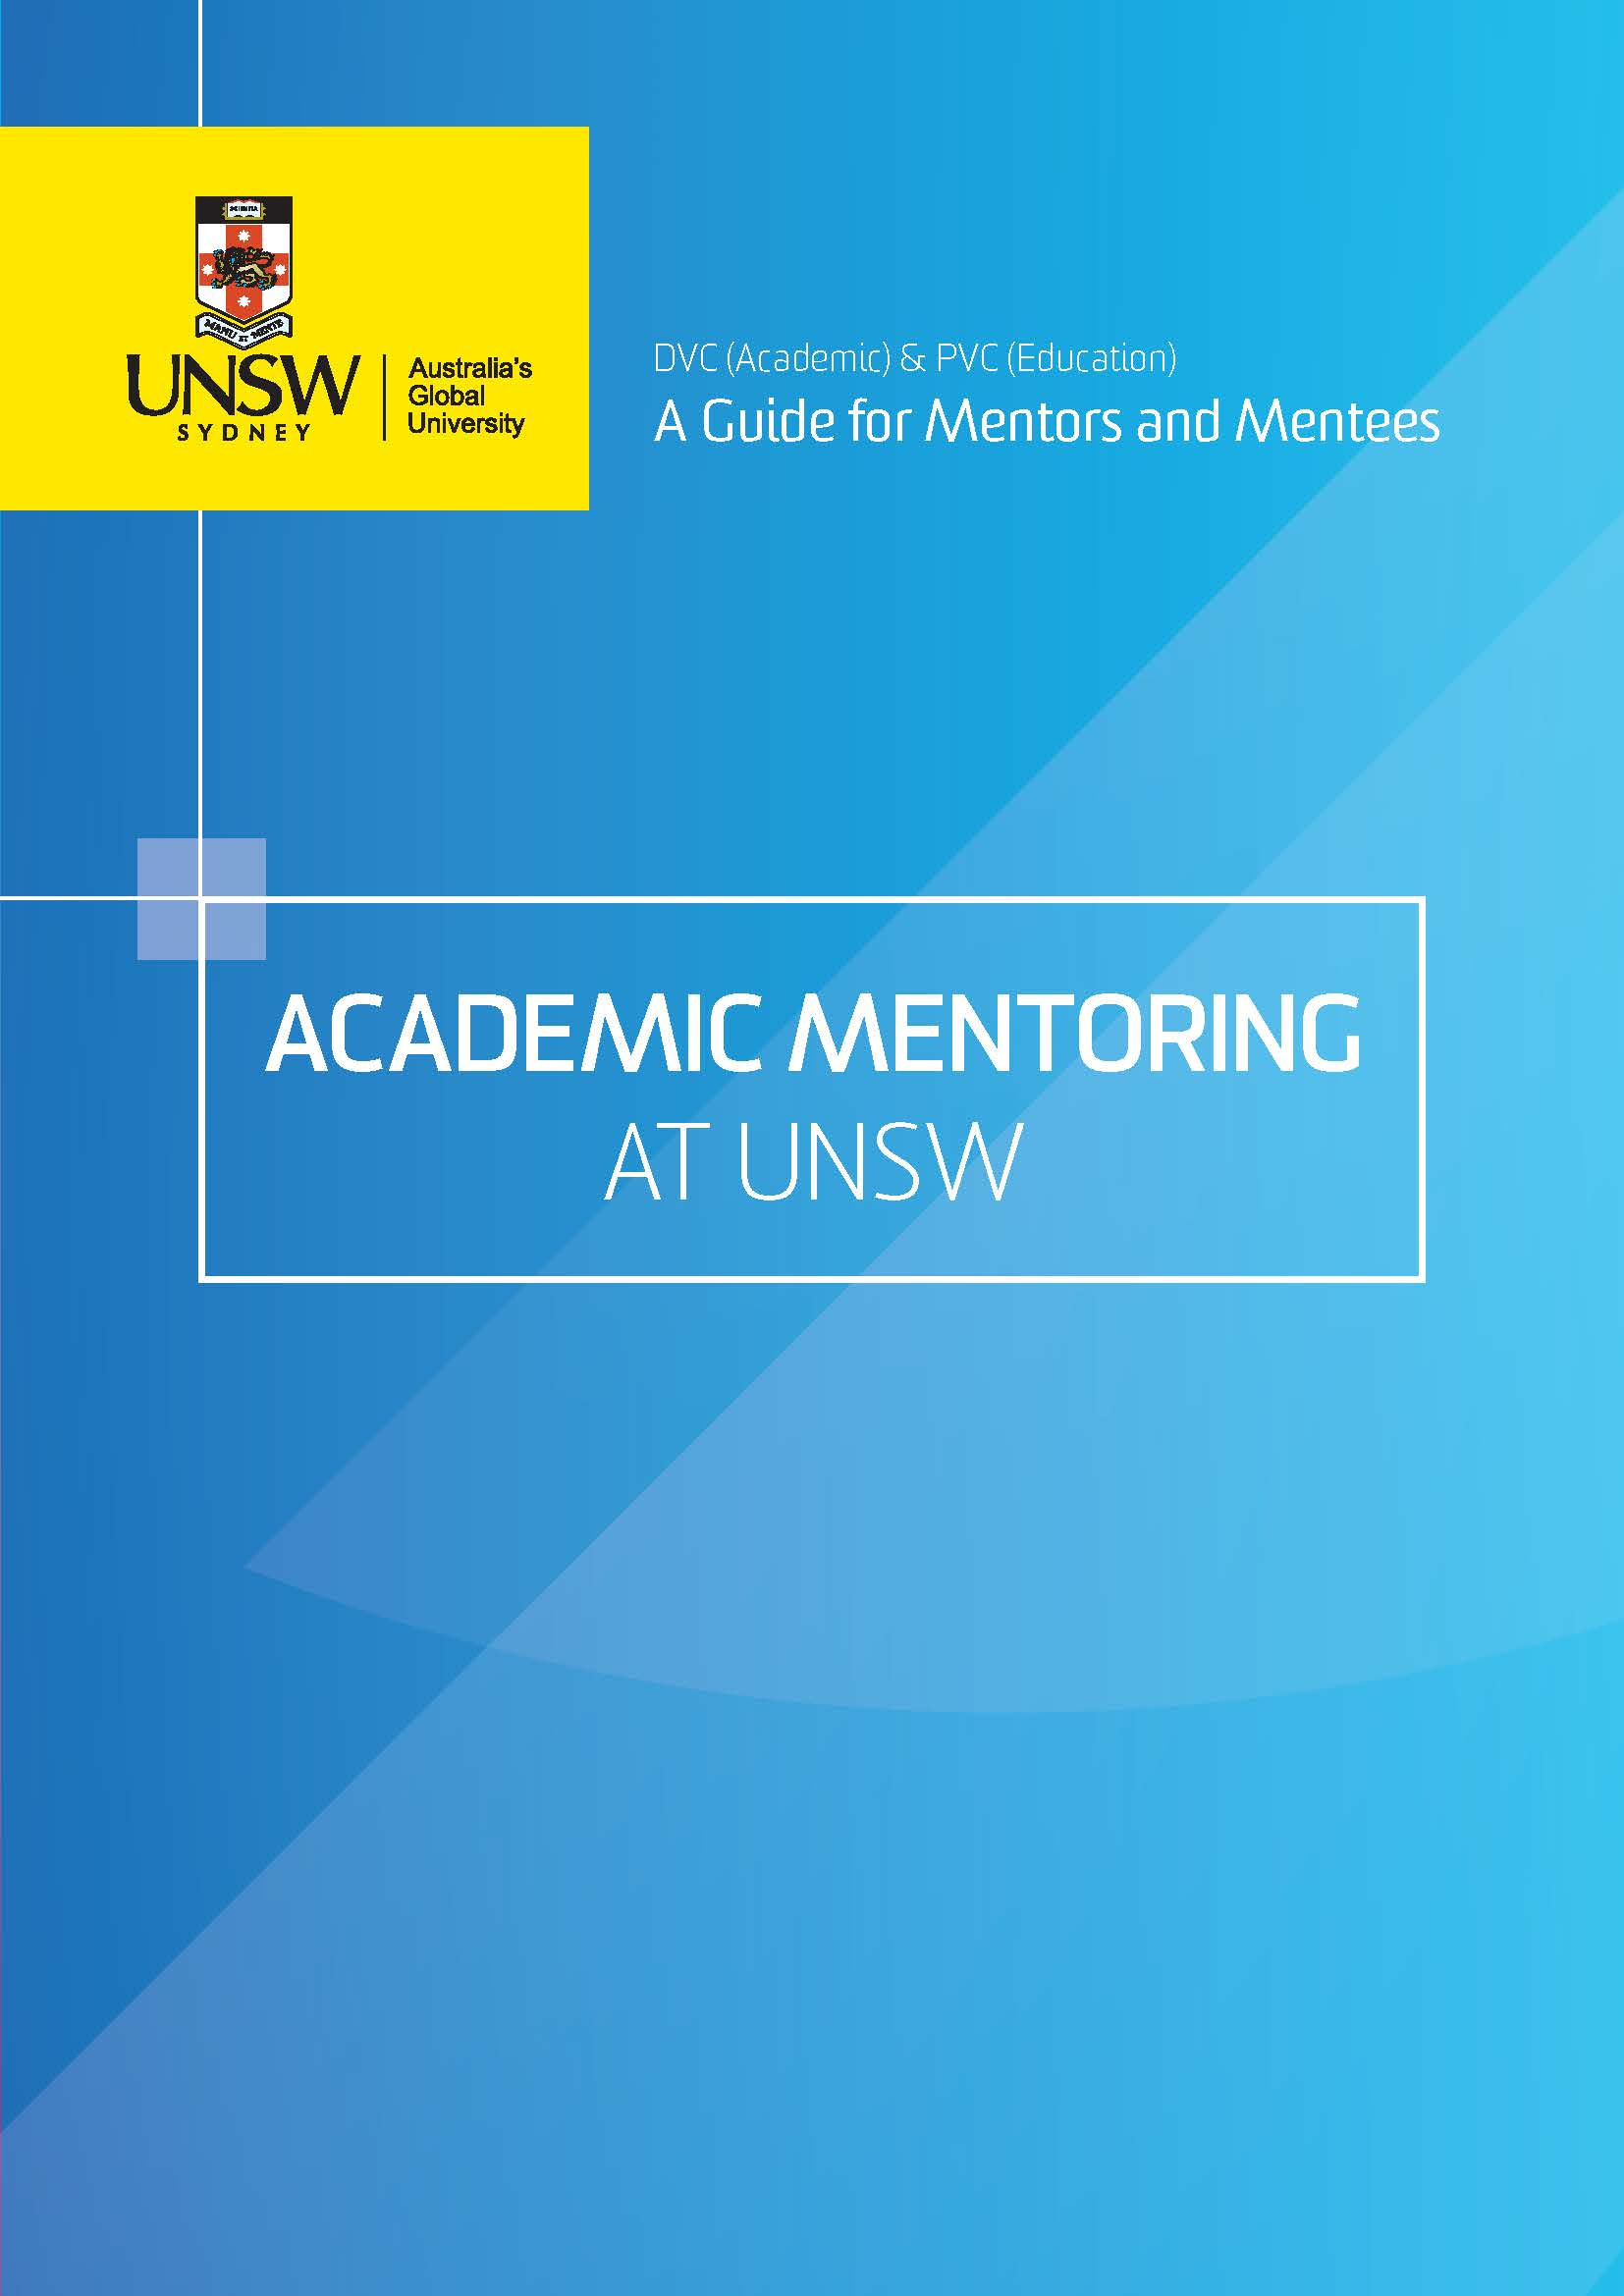 Academic Mentoring Booklet